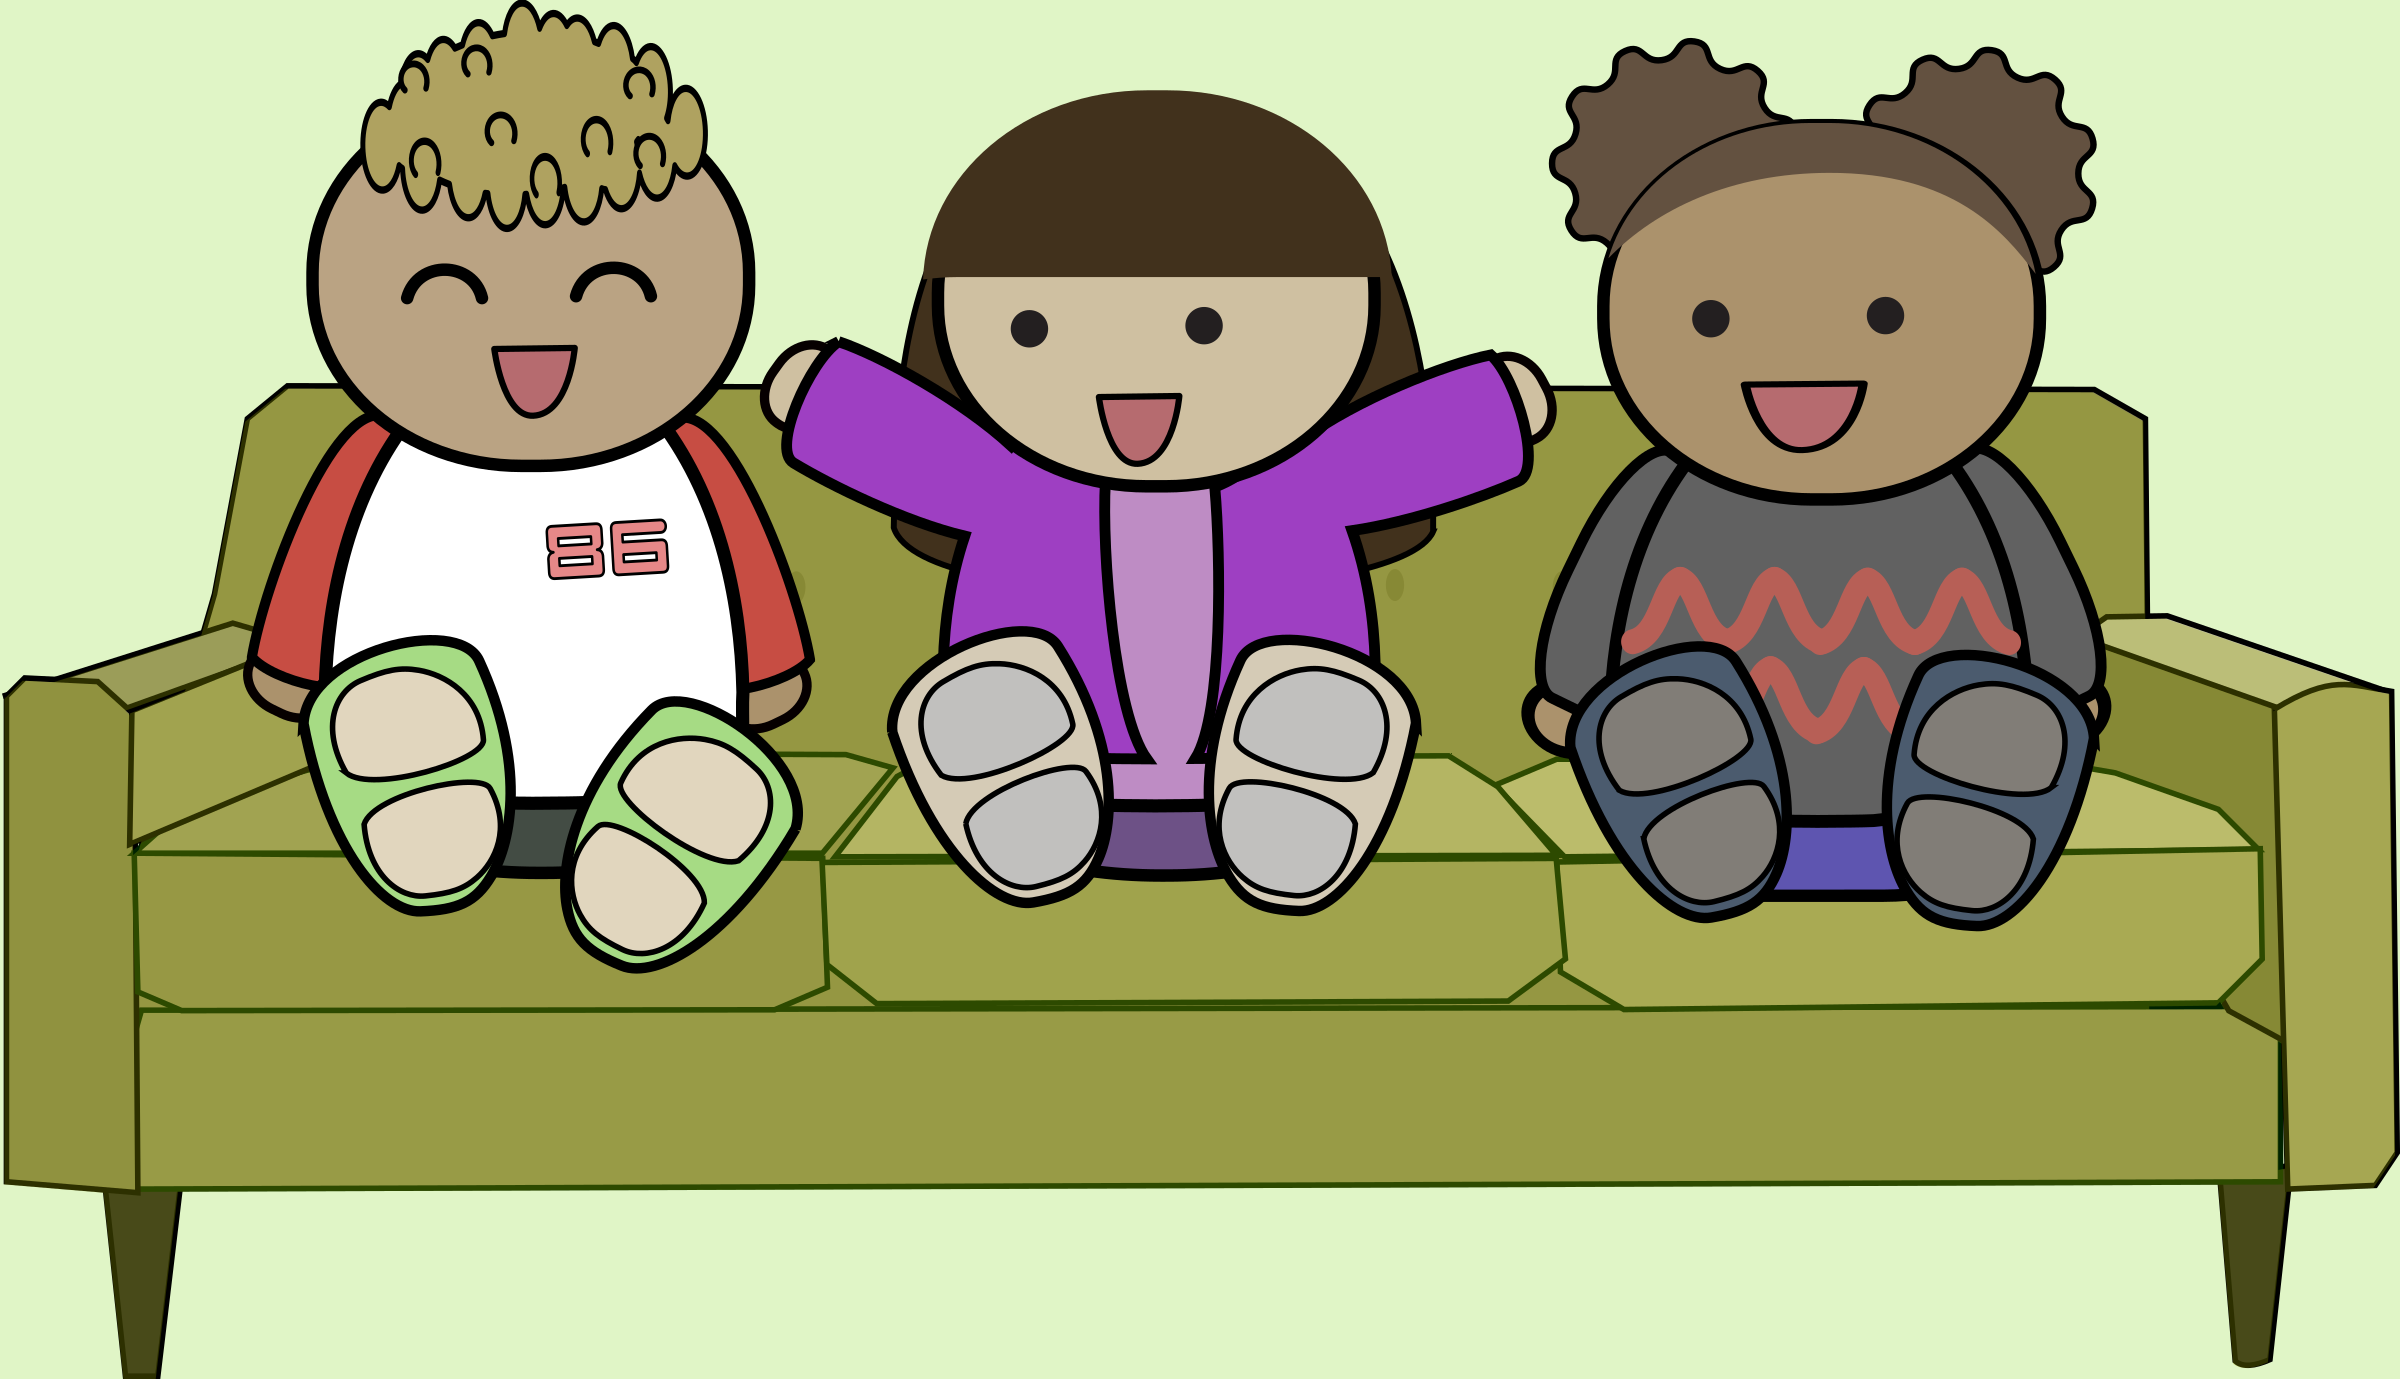 Kids on a sofa by anarres